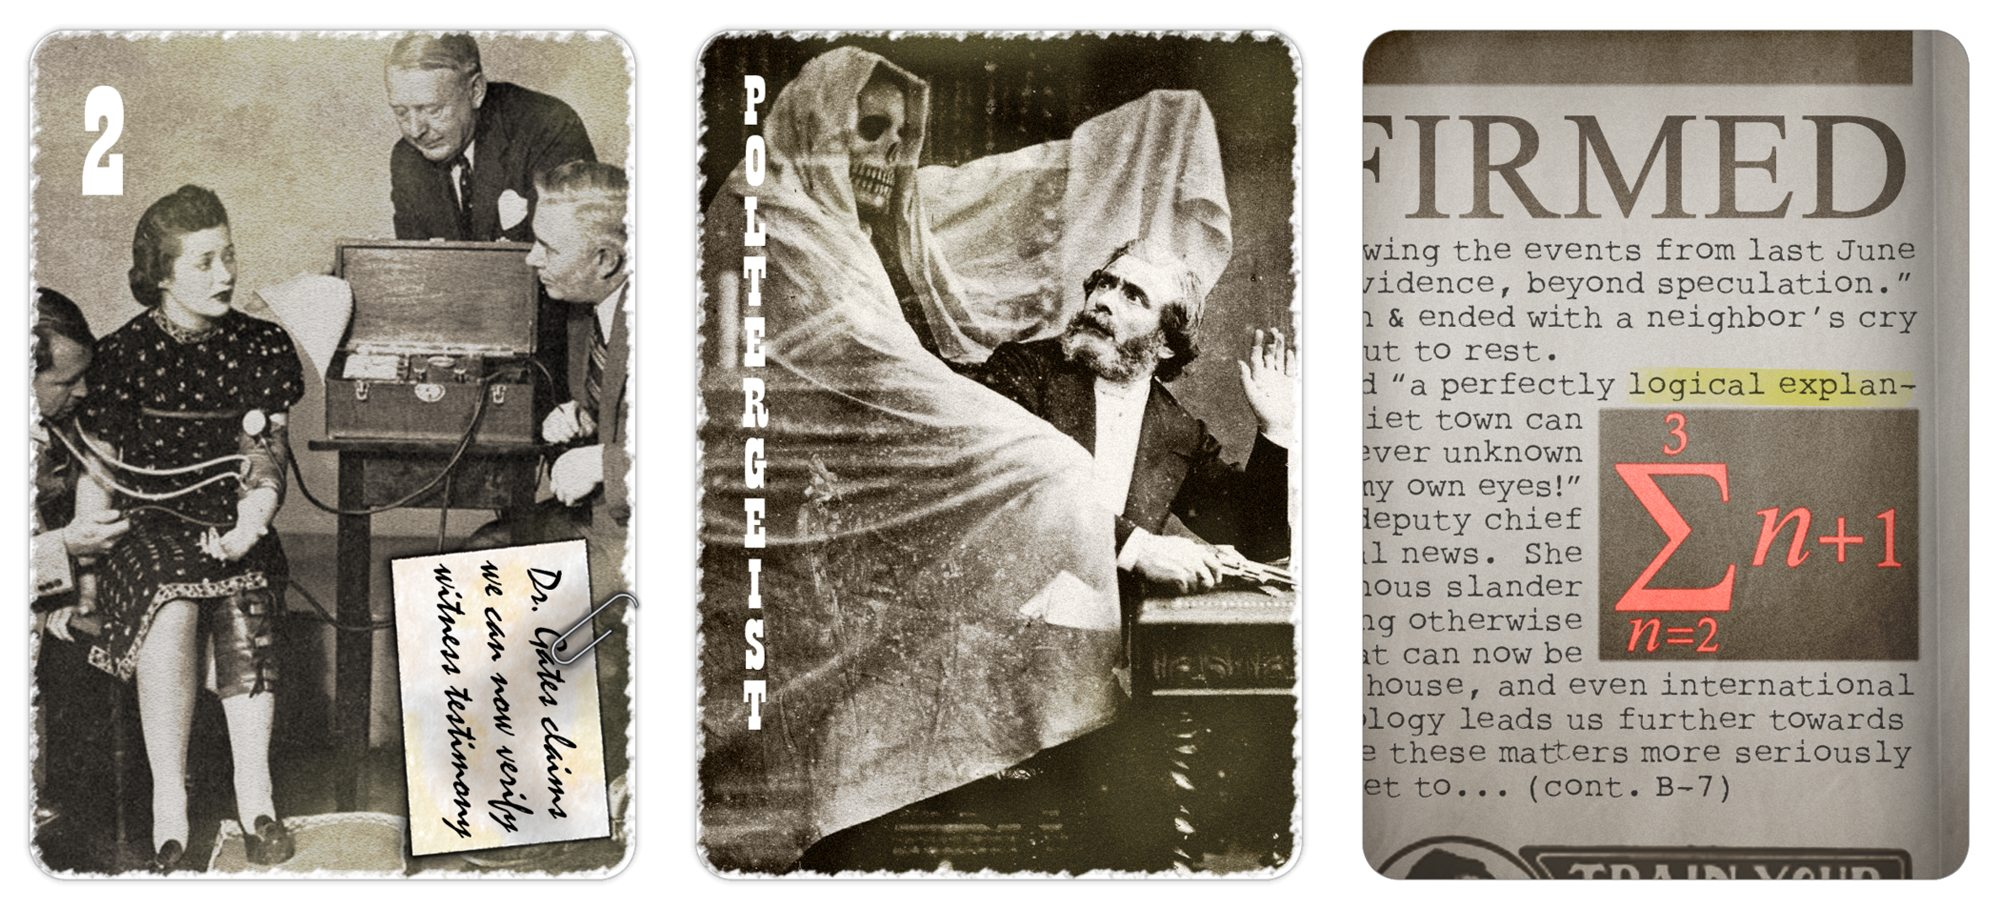 paranormal Investigation cards